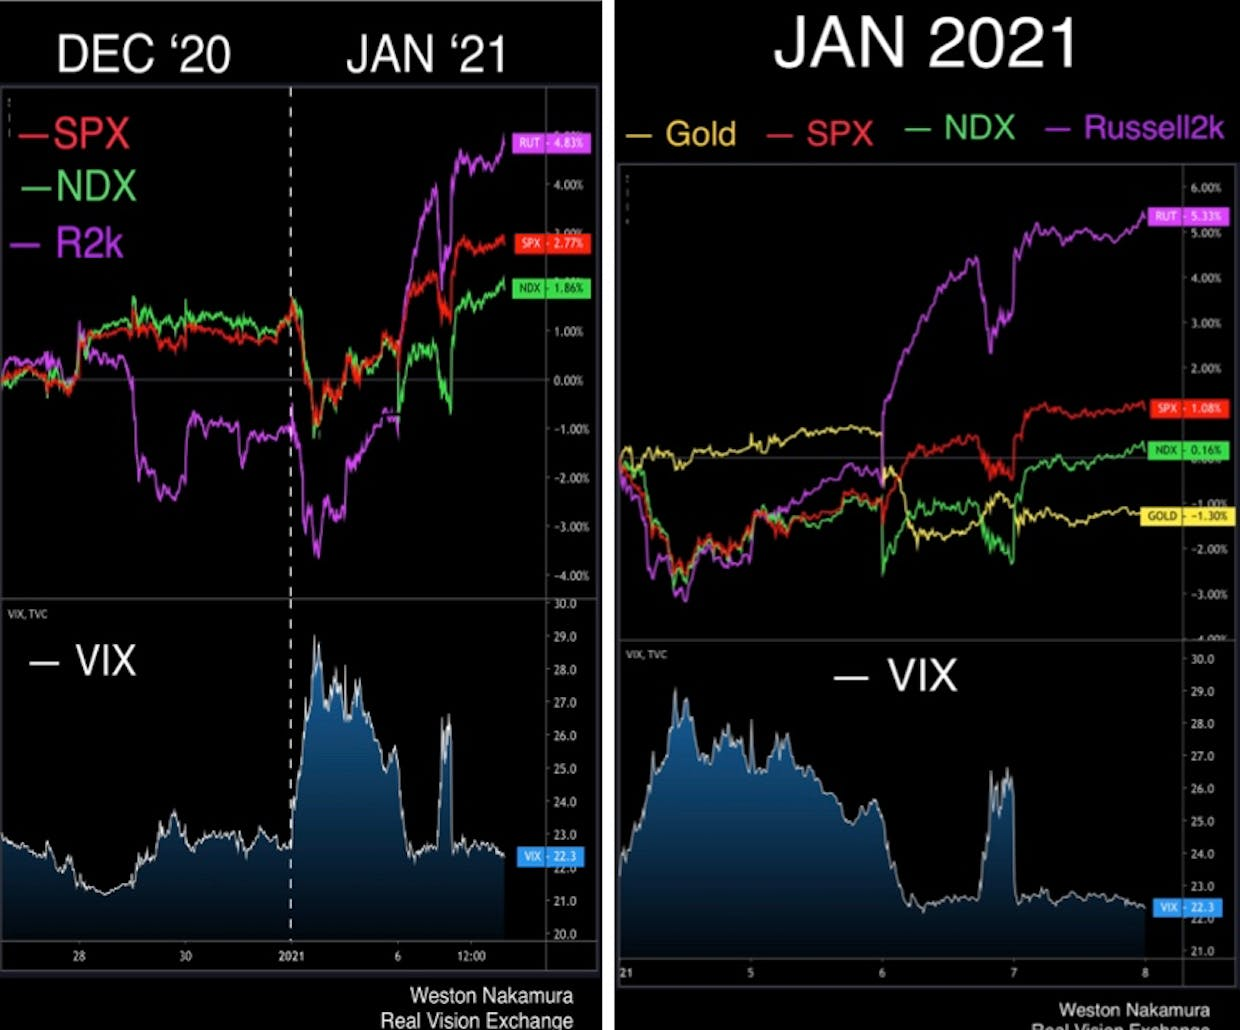 Markets DID react to Jan 6, they reacted well in advance as well as reacted on day of with additional short lived jump in VIX, priced immediately out when Congress resumed biz as usual later that night.